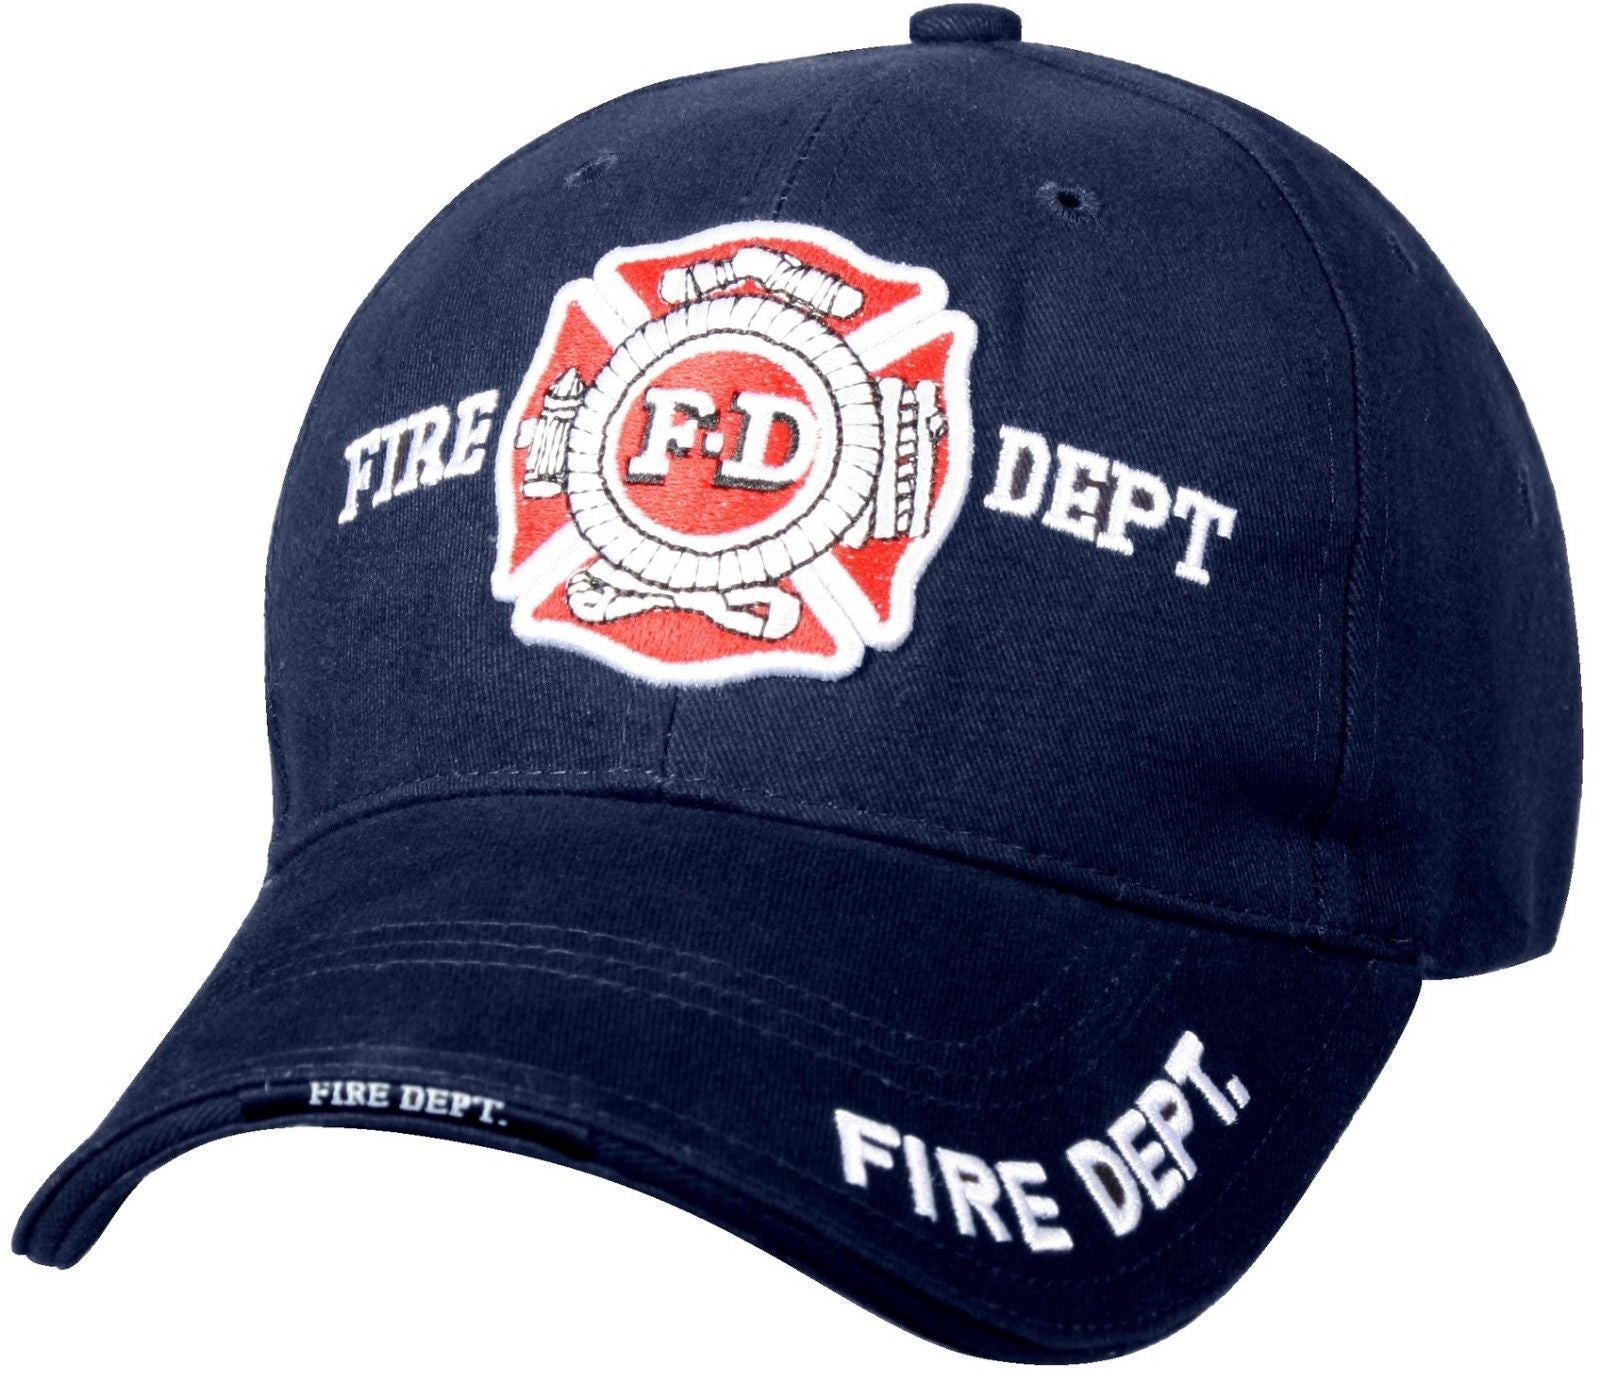 57074802a1f5a Fire Department - Navy Blue - Deluxe low Profile Baseball Cap ...